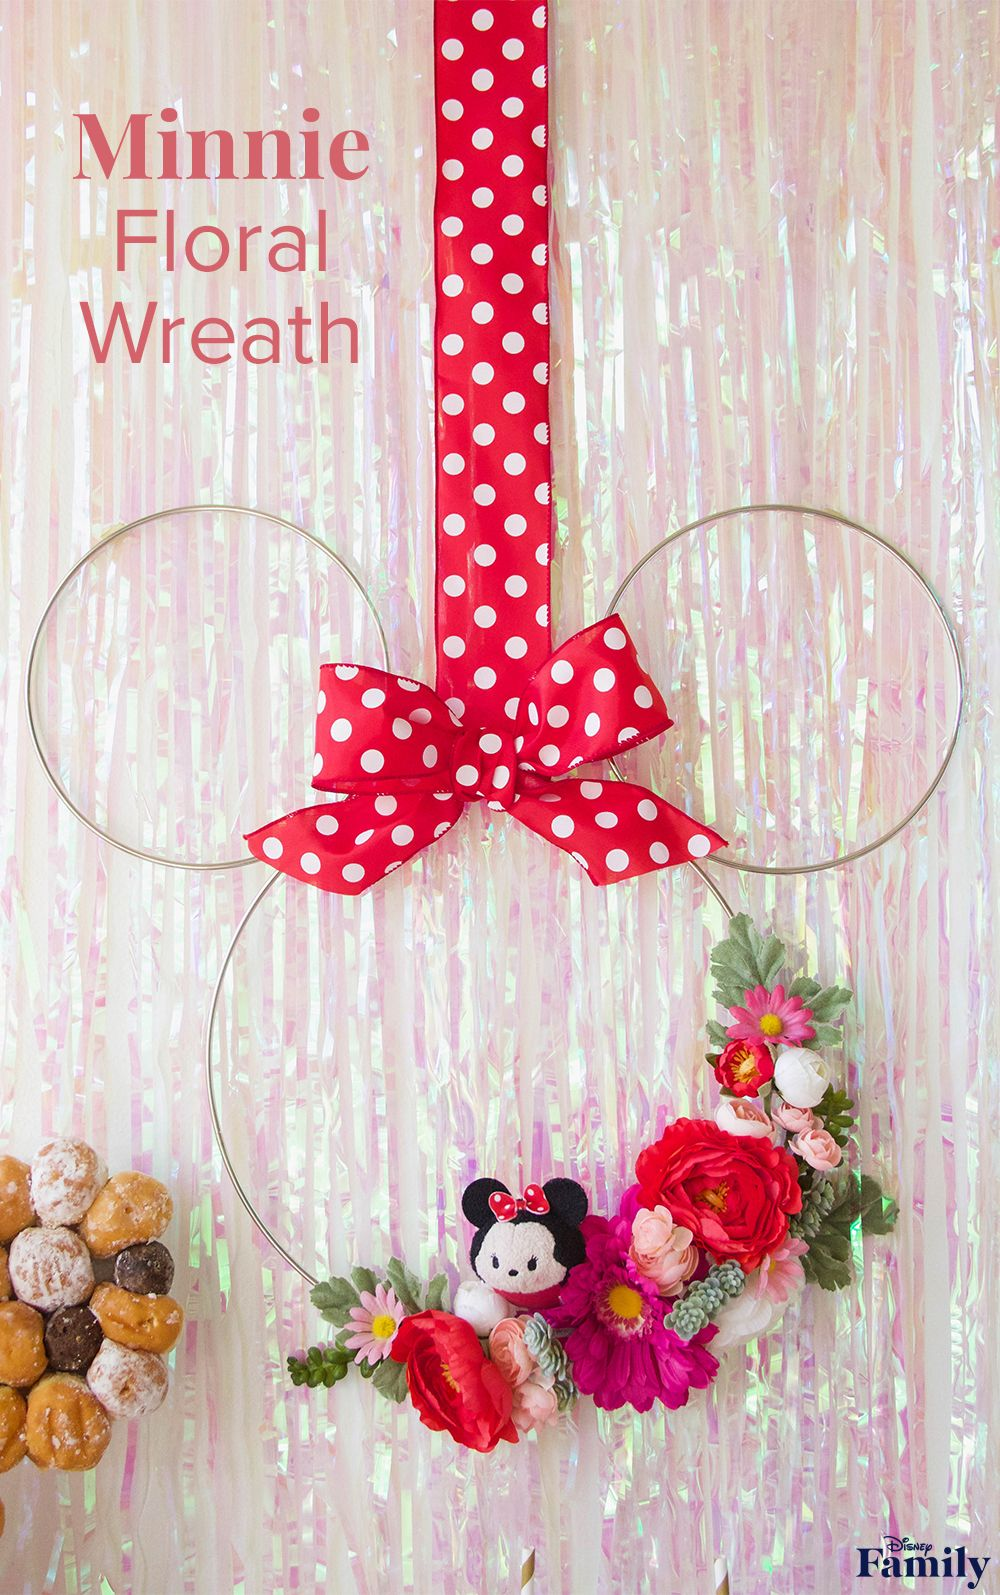 This DIY Minnie Floral Wreath Is Perfect for Spring #disneycrafts